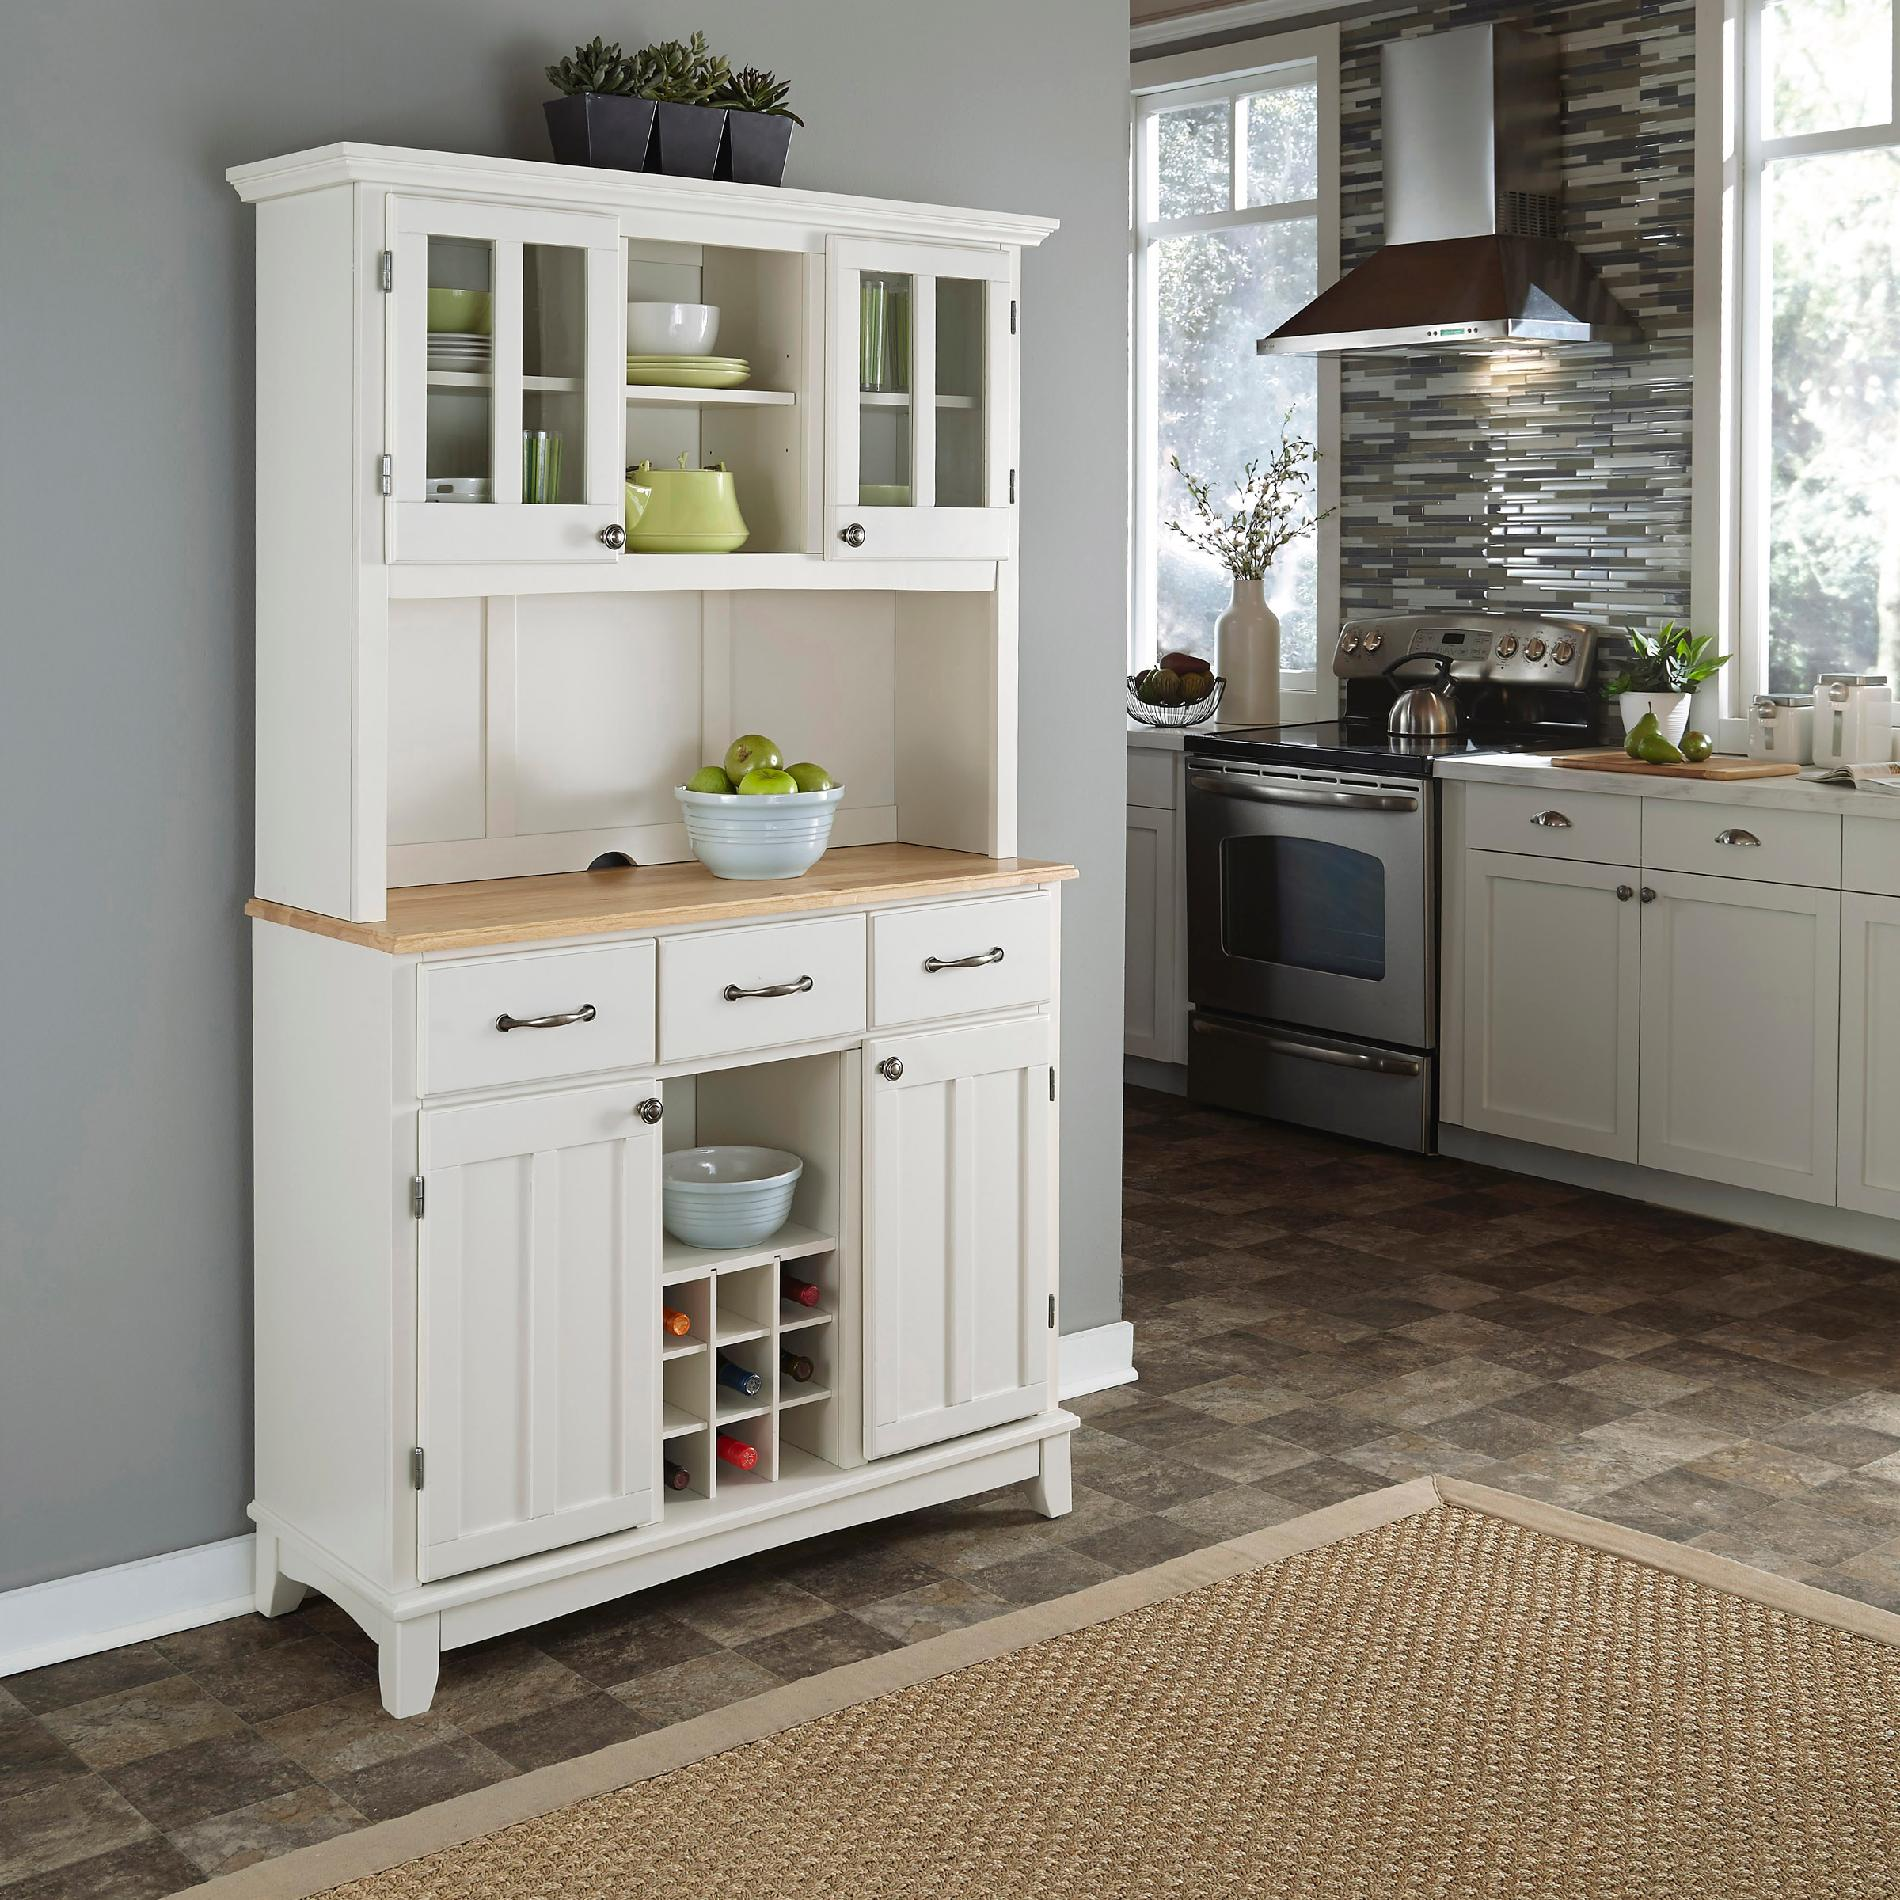 Home Styles Dining Room Buffet Hutch - White